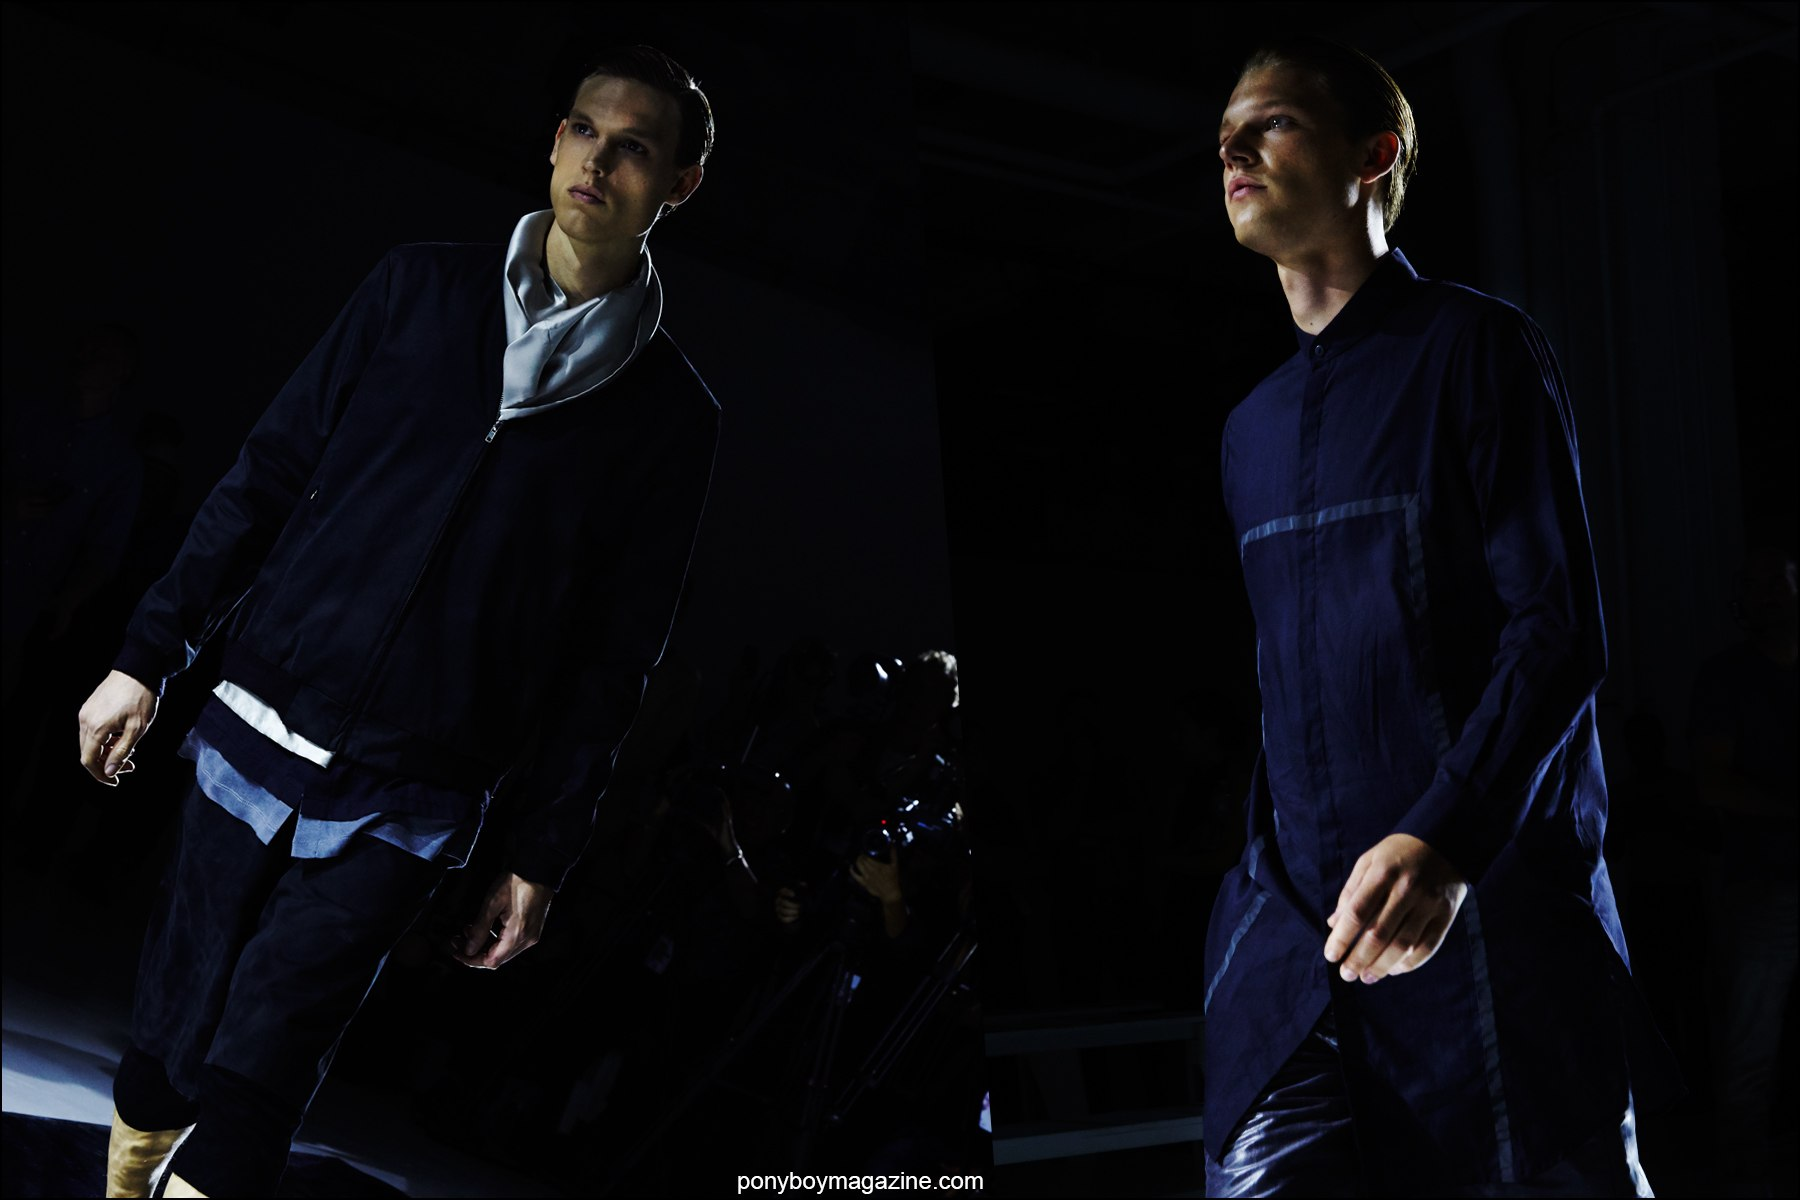 Male models photographed on the Rochambeau S/S16 runway. Photographed by Alexander Thompson for Ponyboy magazine NY.